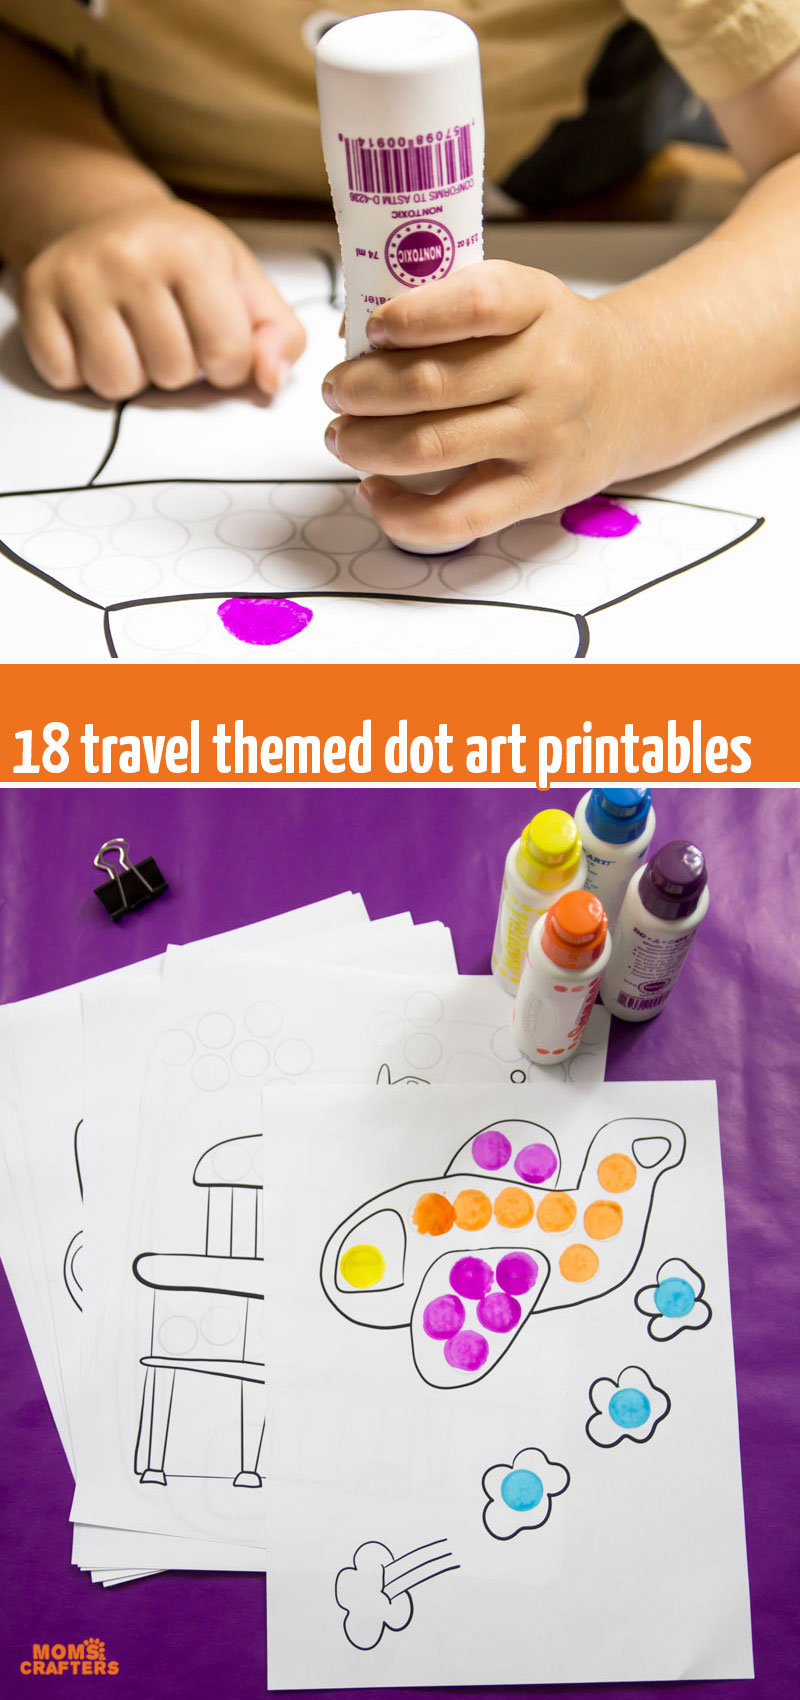 Grab these printable travel do a dot pages - do them with bingo markers or with dot stickers! You will also get more fun travel activities for kids to teach about travel themed homeschooling or teaching units OR to use as an airplane activity for toddlers.